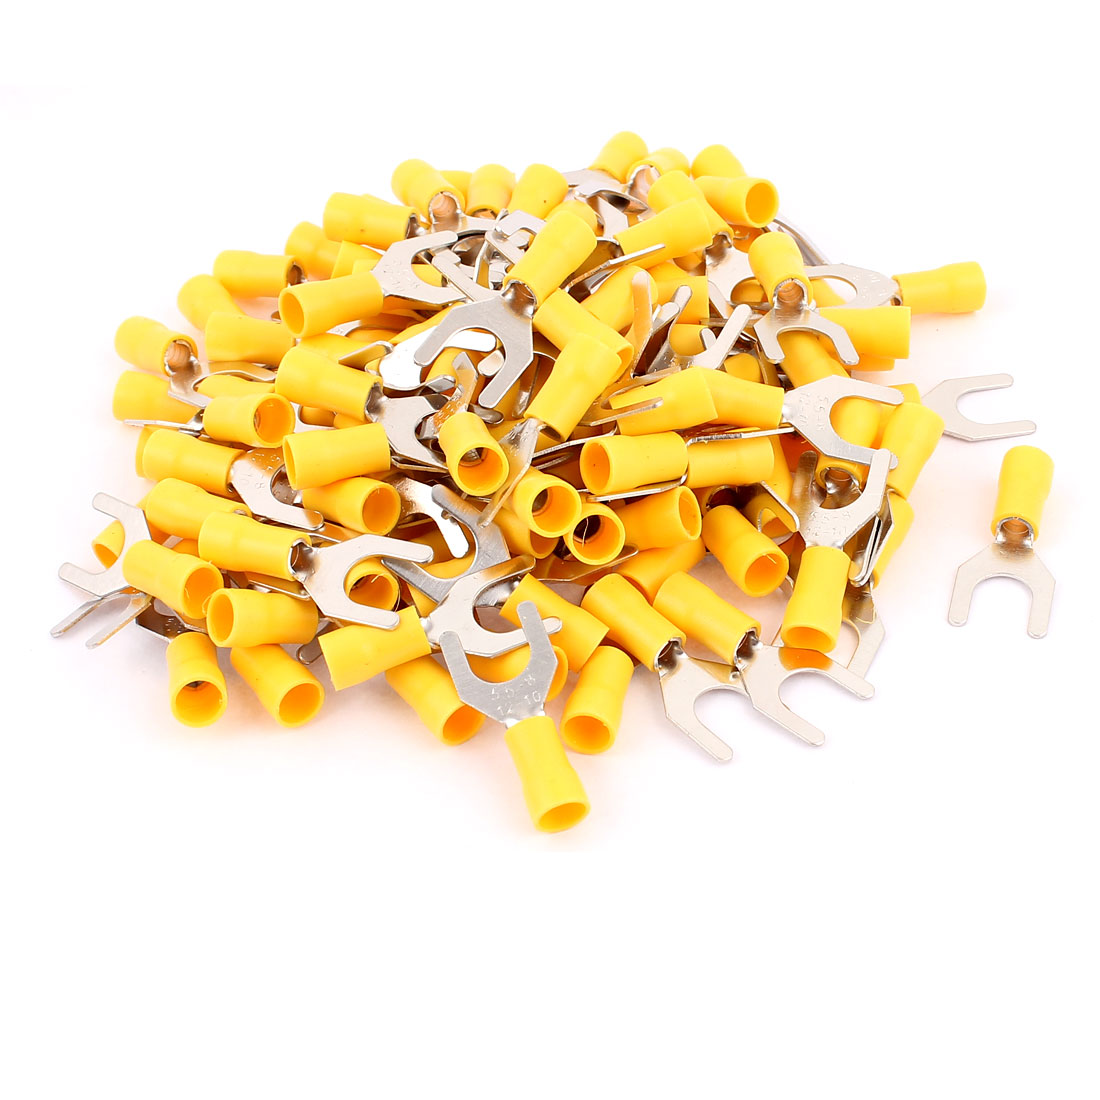 120pcs SV5.5-8 Fork Spade Insulated Wire Terminal Connectors Yellow for AWG 12-10